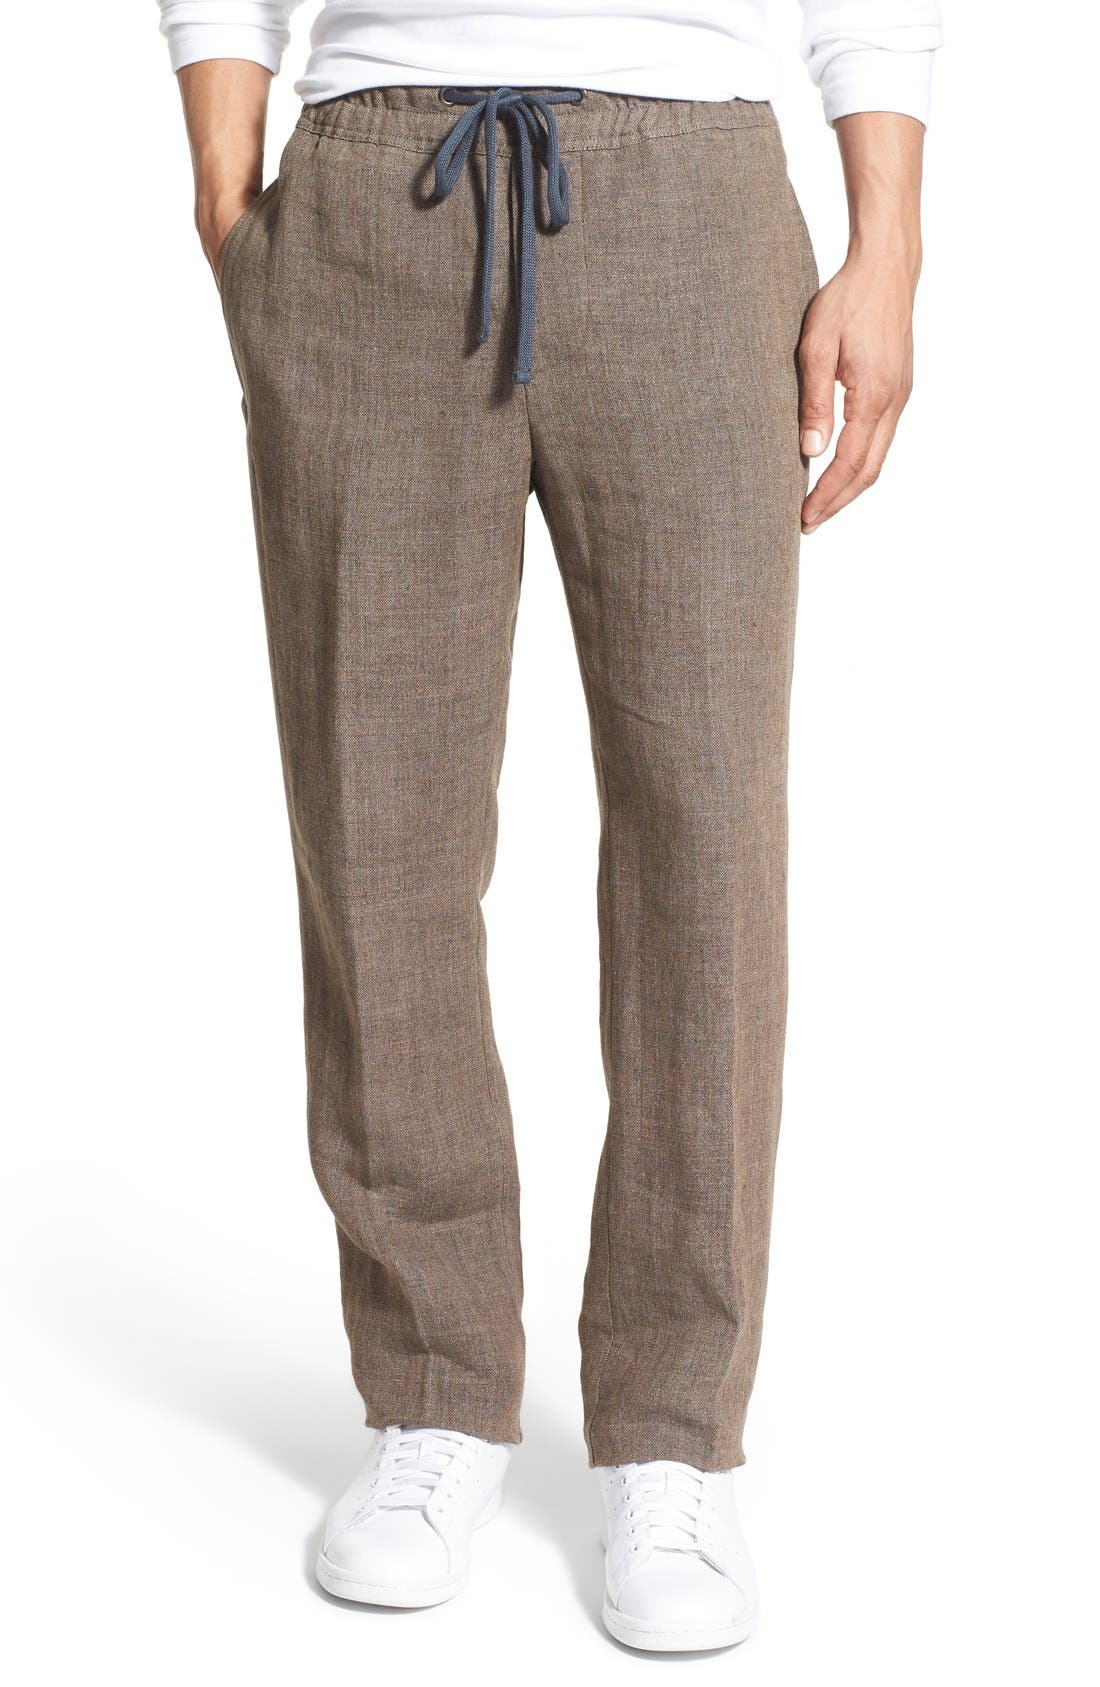 JAMES PERSE 'Delave' Drawstring Linen Pants